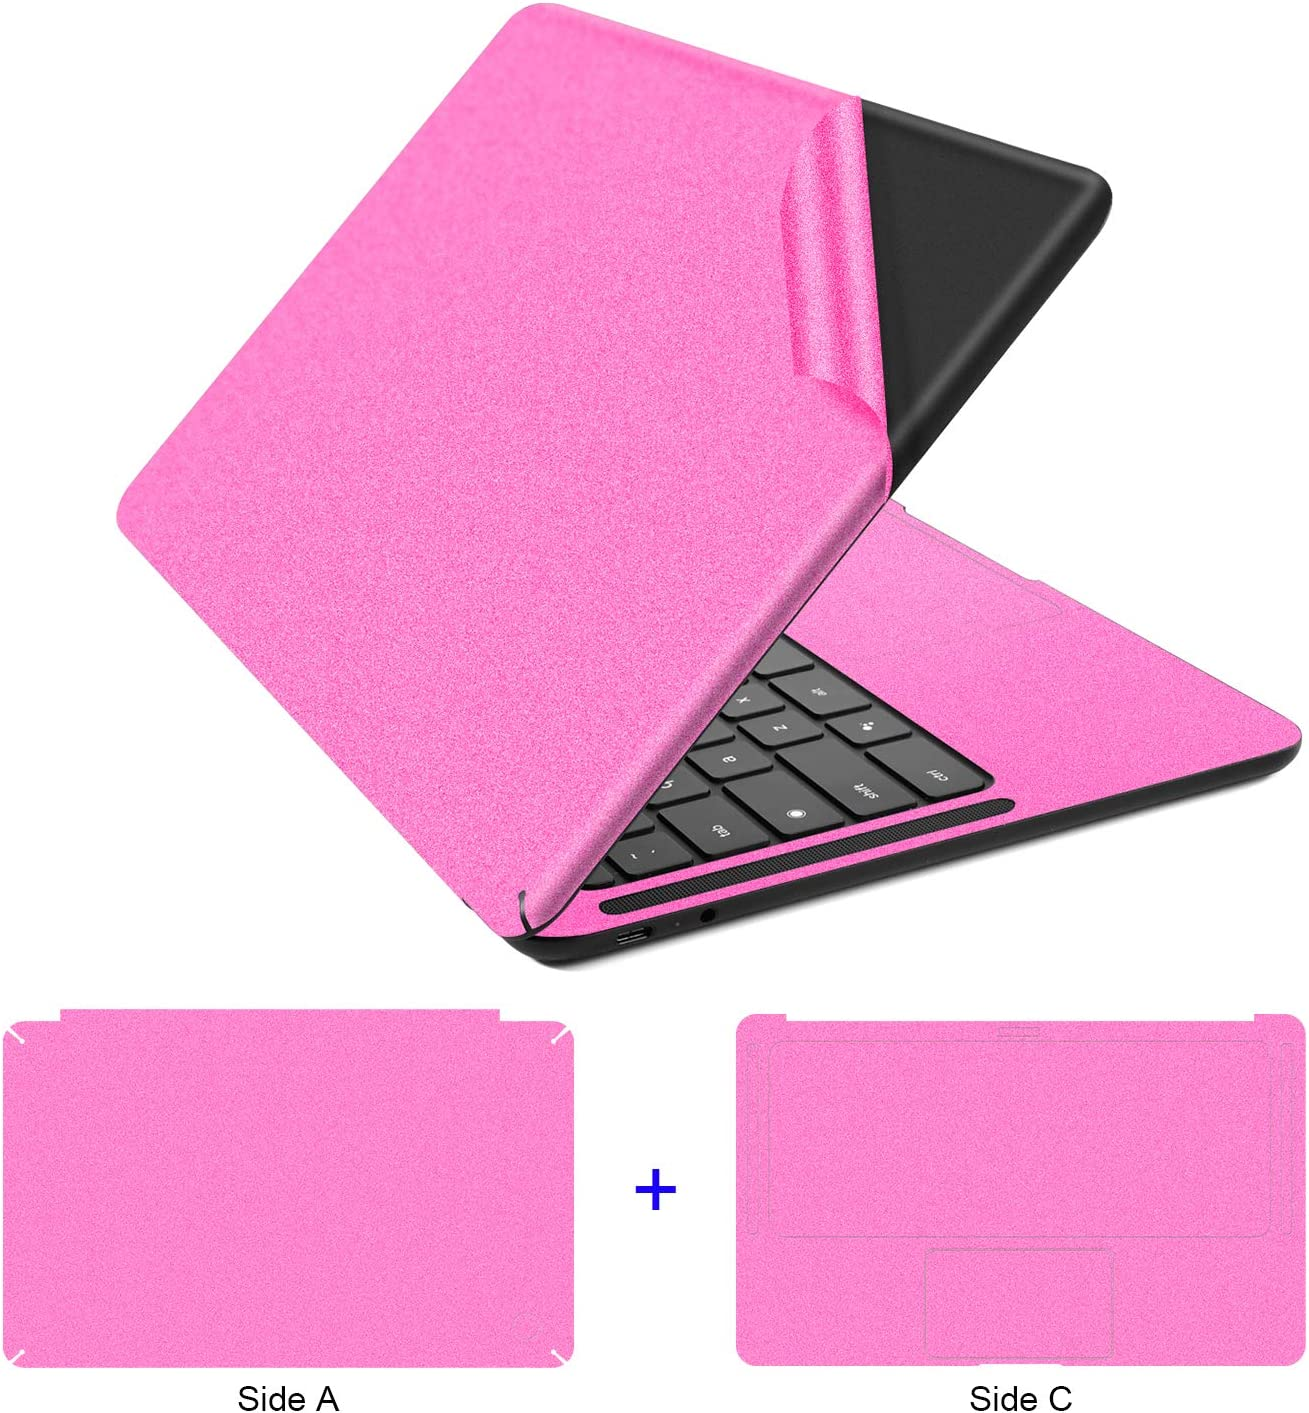 Lapogy Google Pixelbook Go Skin Decal Cover,Compatible with Google Pixelbook Go 13.3 inch Full Body Protective, Removable and Anti-Scracth Laptop Skin,Google Pixelbook Go Accessories,Pink